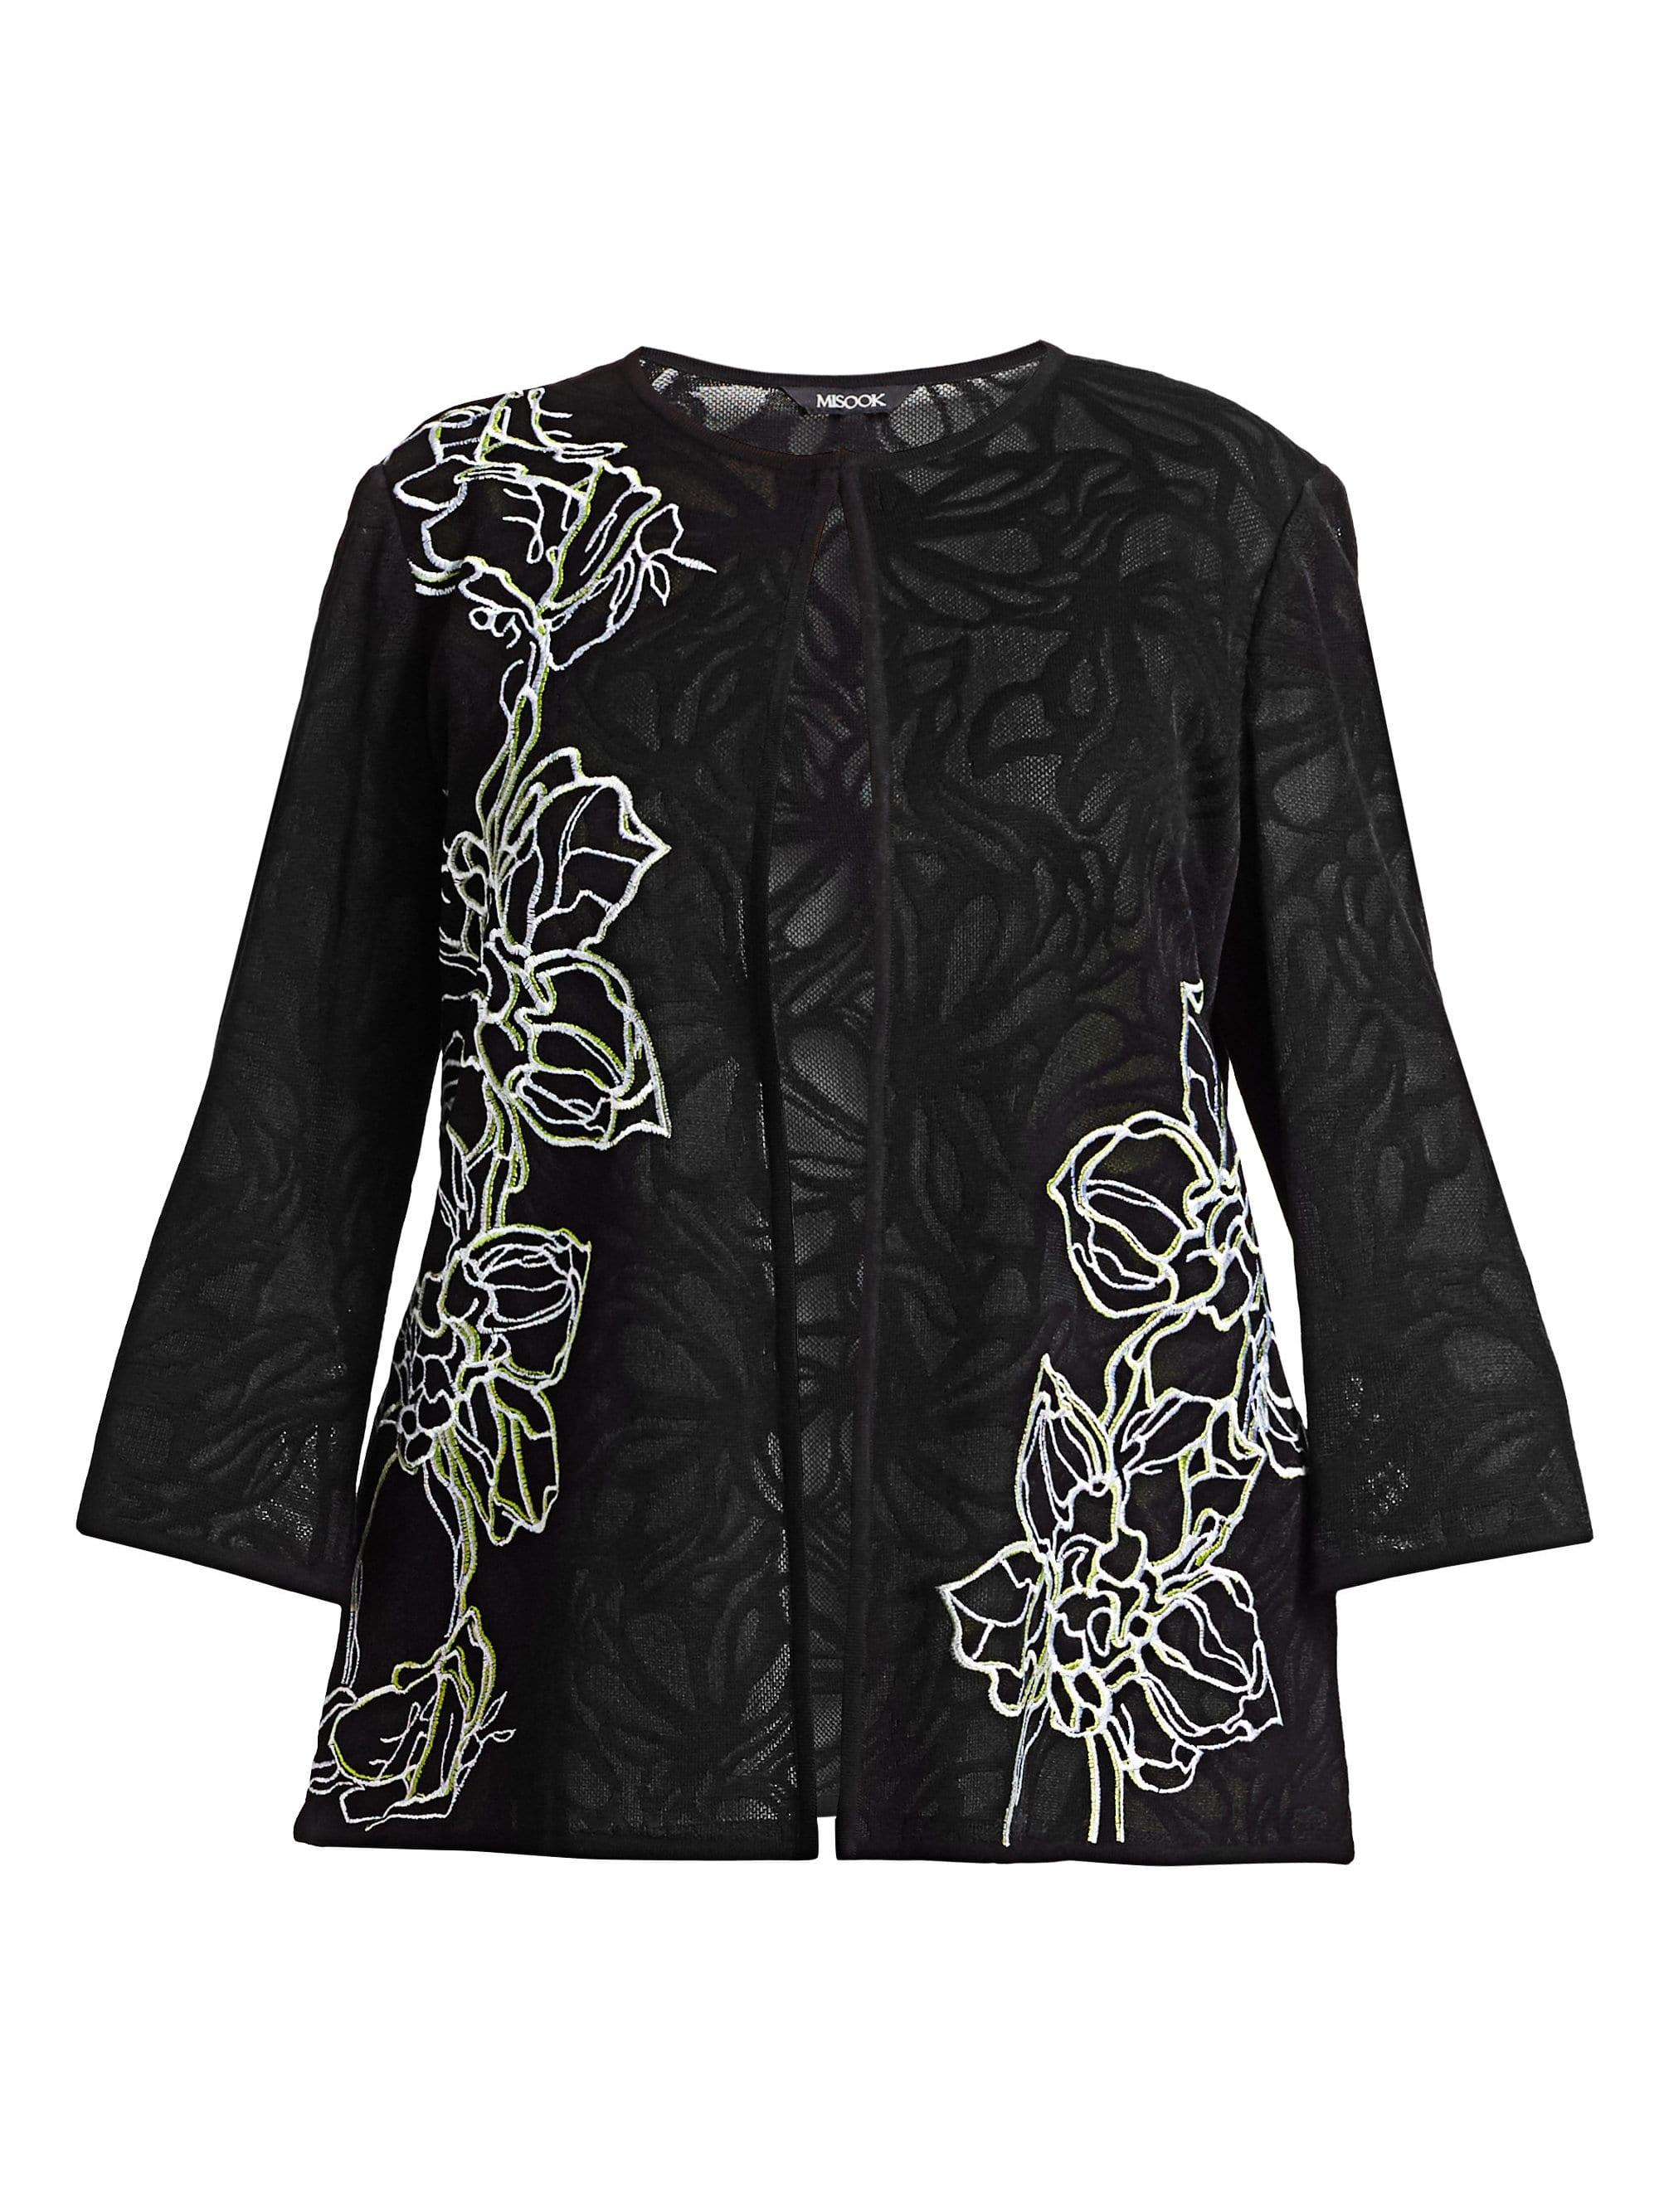 0e9ea481bfdf3 ... Sheer Pattern Embroidery Jacket - Lyst. View fullscreen